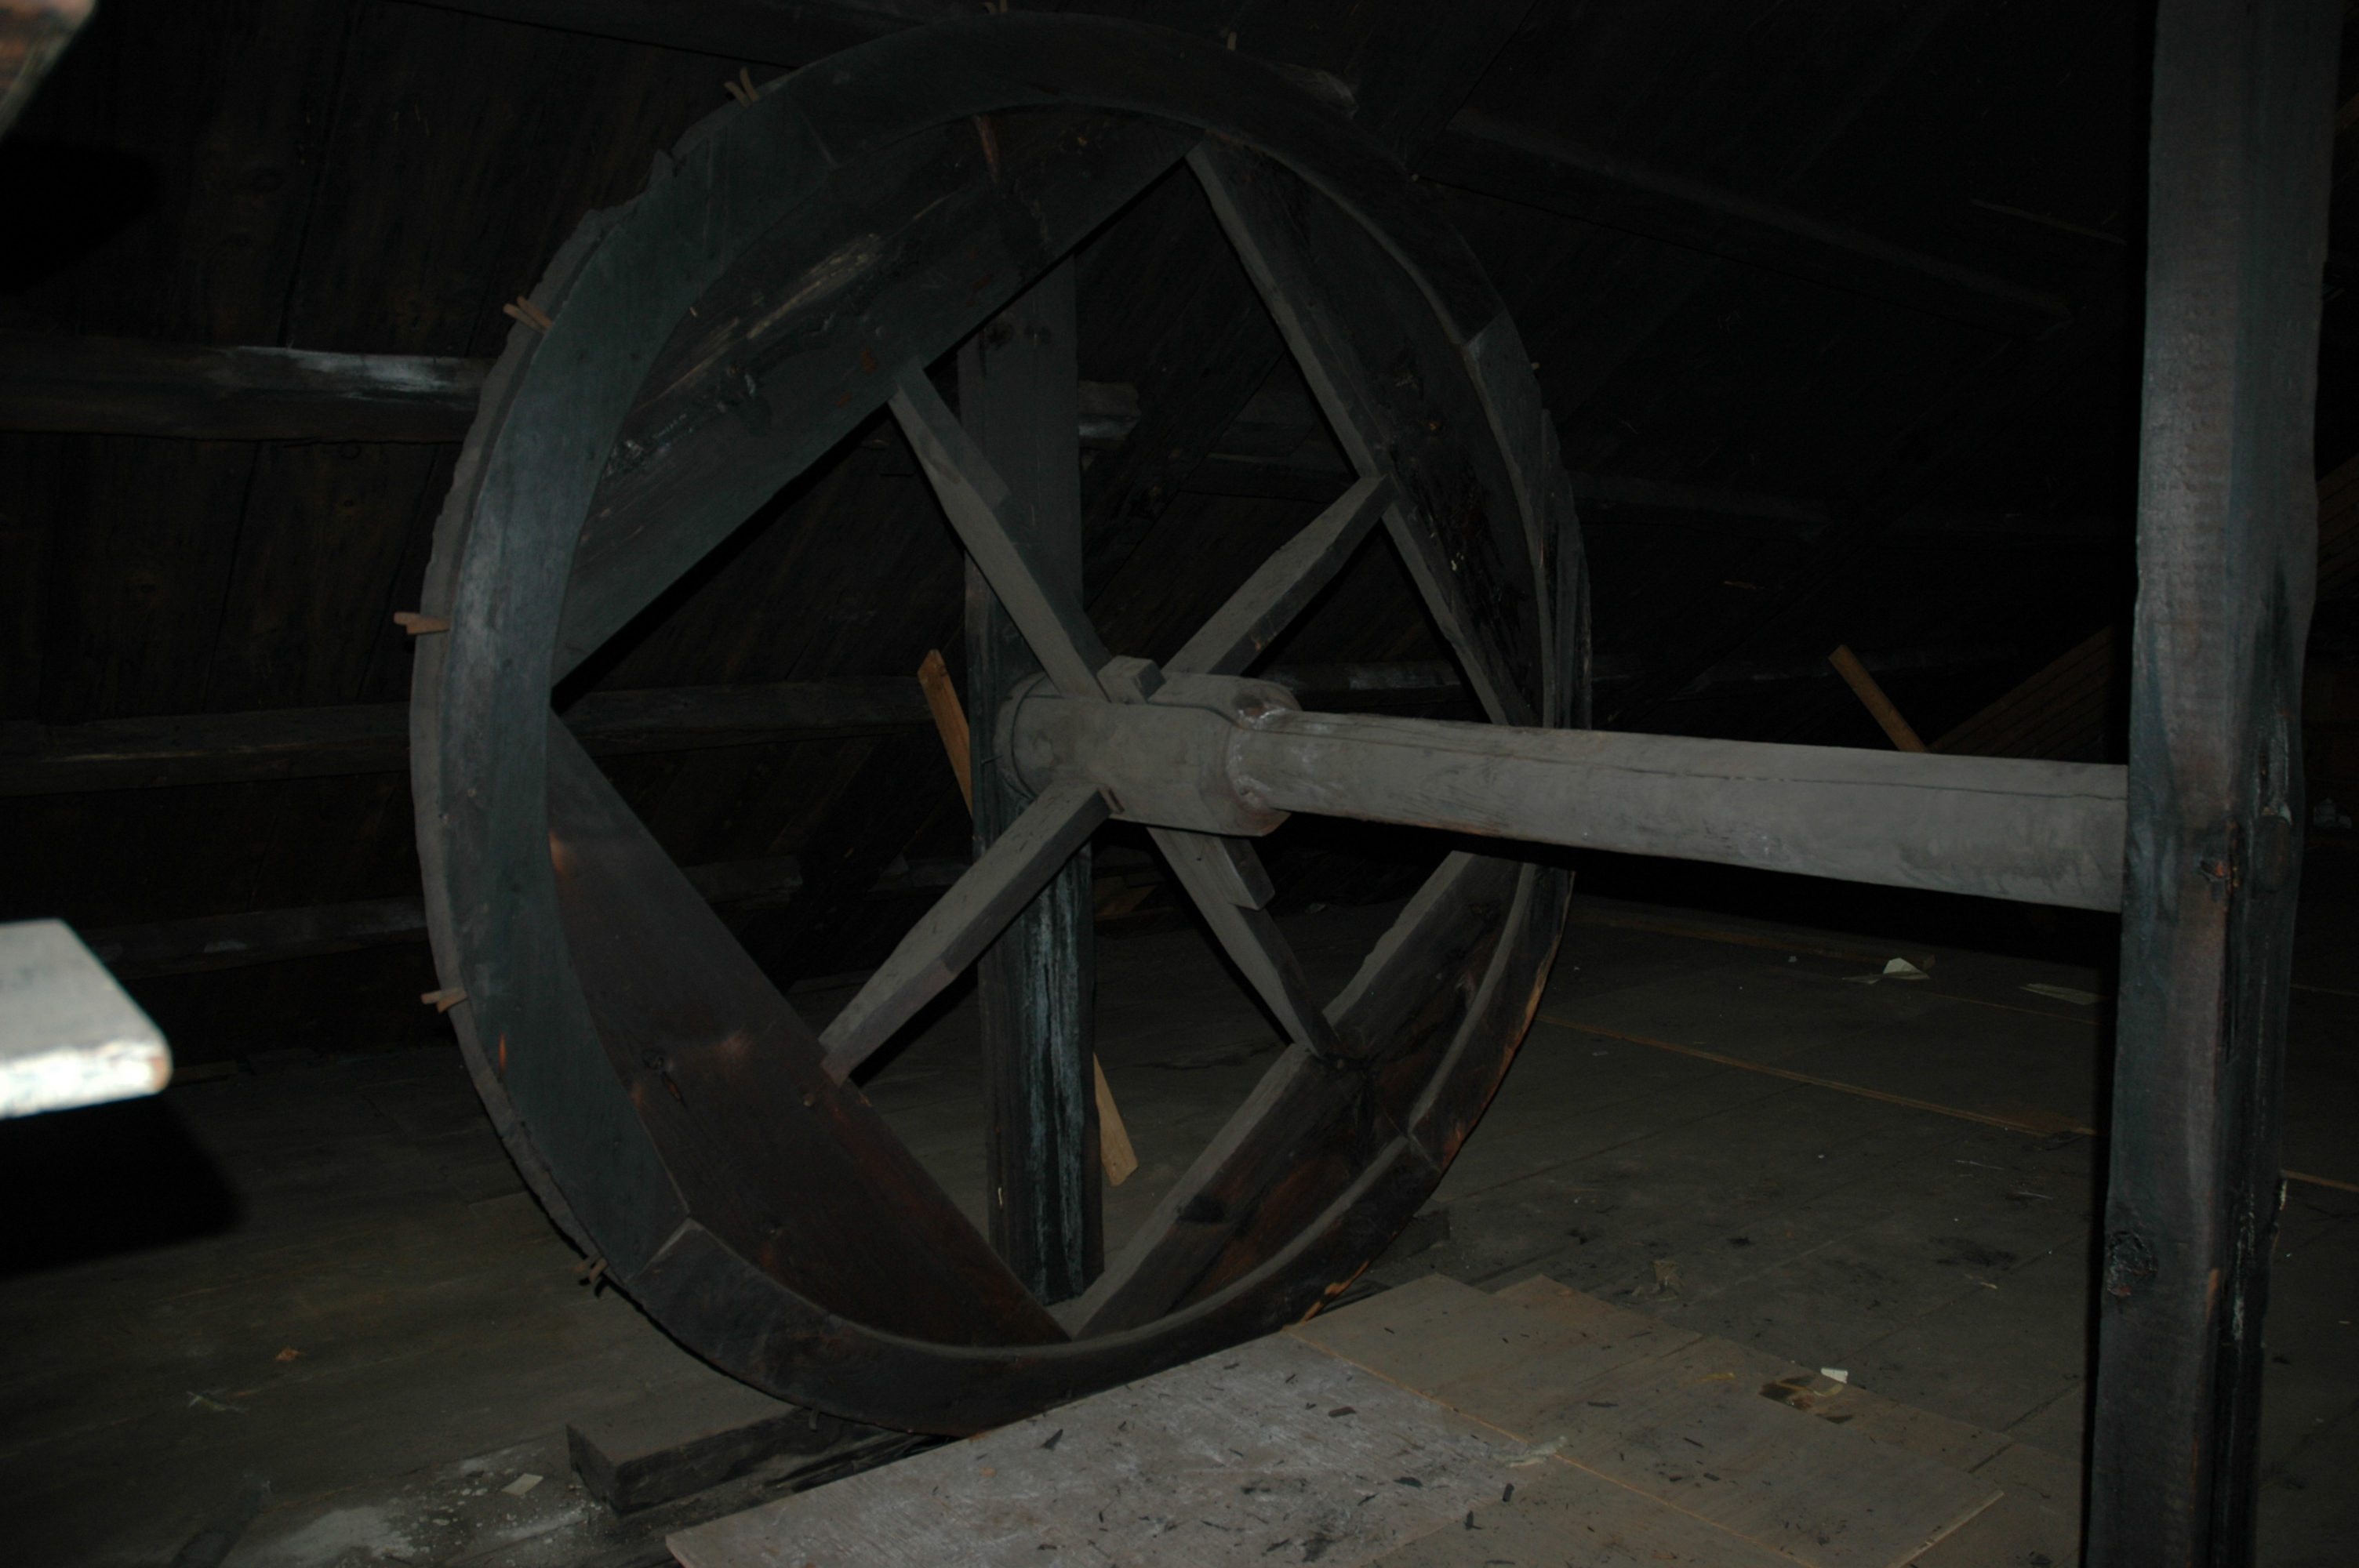 LIZ GOTTHELF/Journal TribuneA wheel from a former pulley system on the third floor of the Agren Appliance building in downtown Saco.